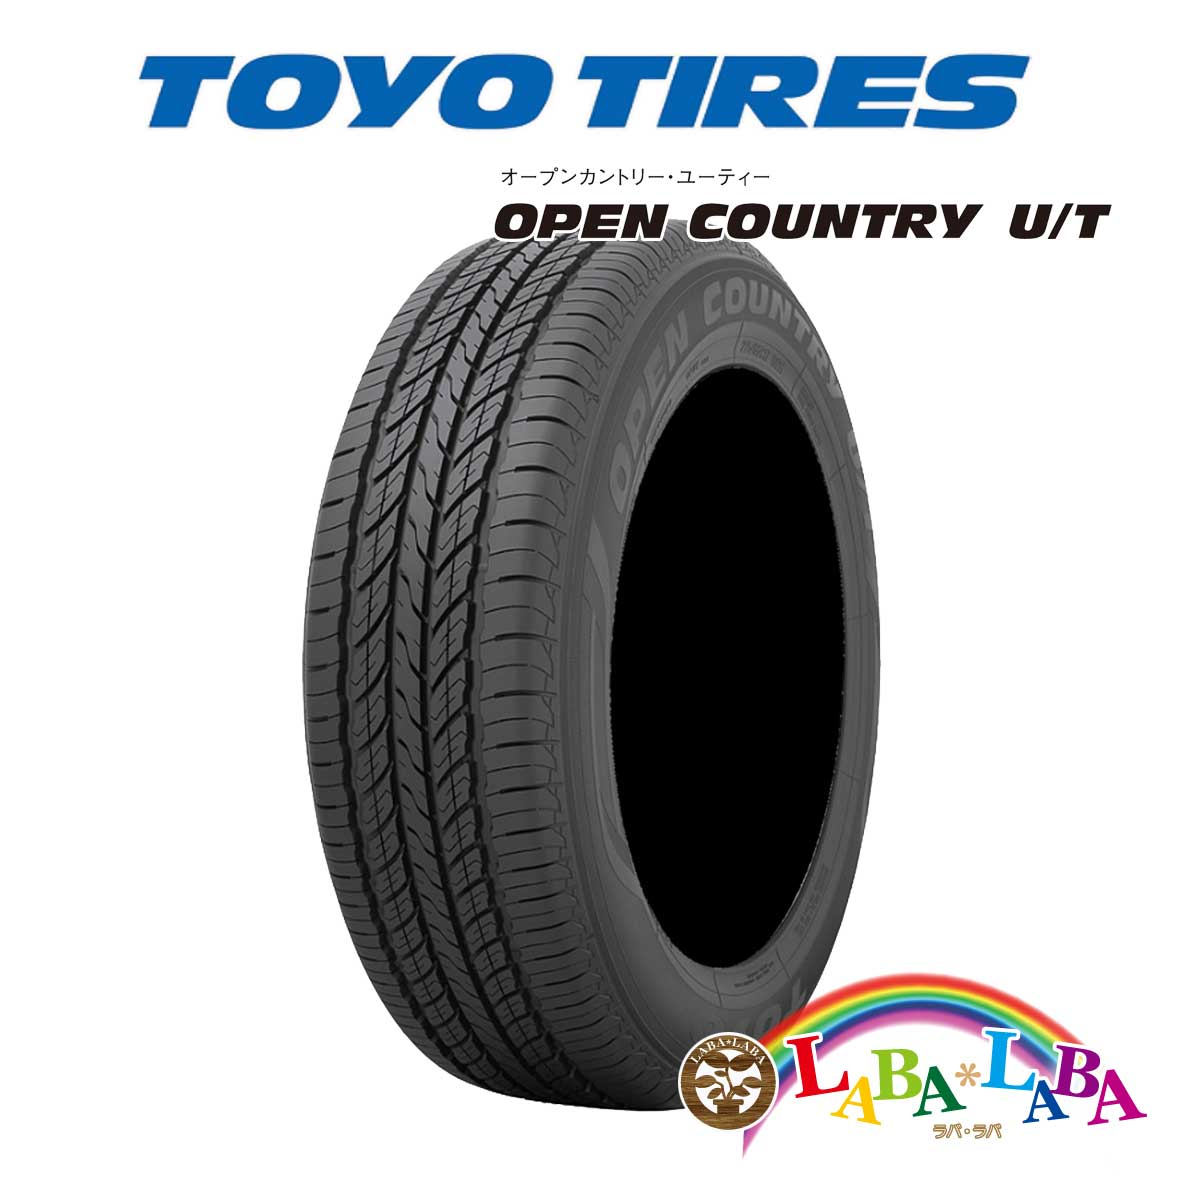 TOYO トーヨー OPEN COUNTRY オープンカントリー U/T (UT) 225/55R19 99V サマータイヤ SUV 4WD 2本セット